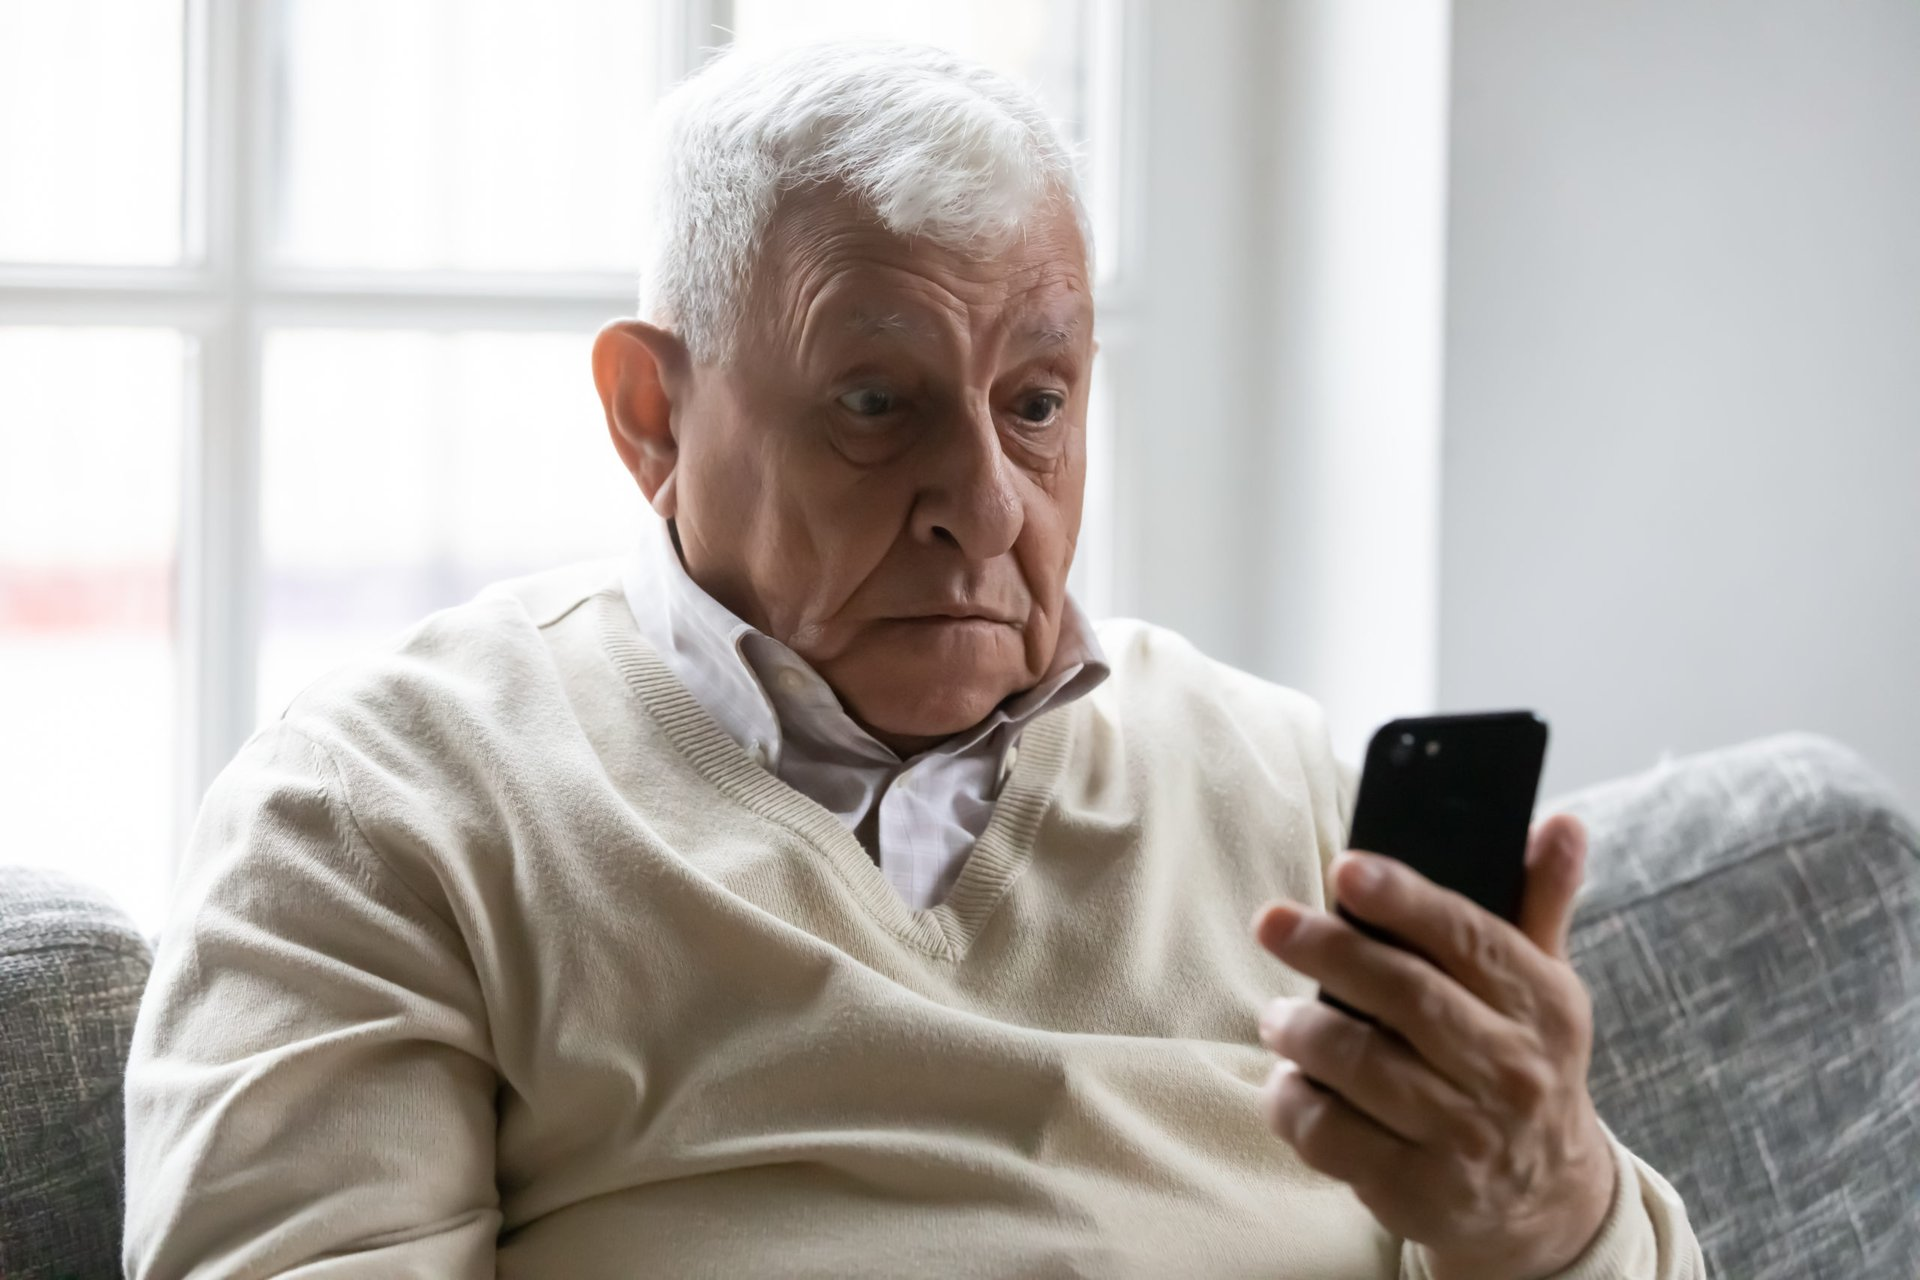 Surprised senior holding a smartphone